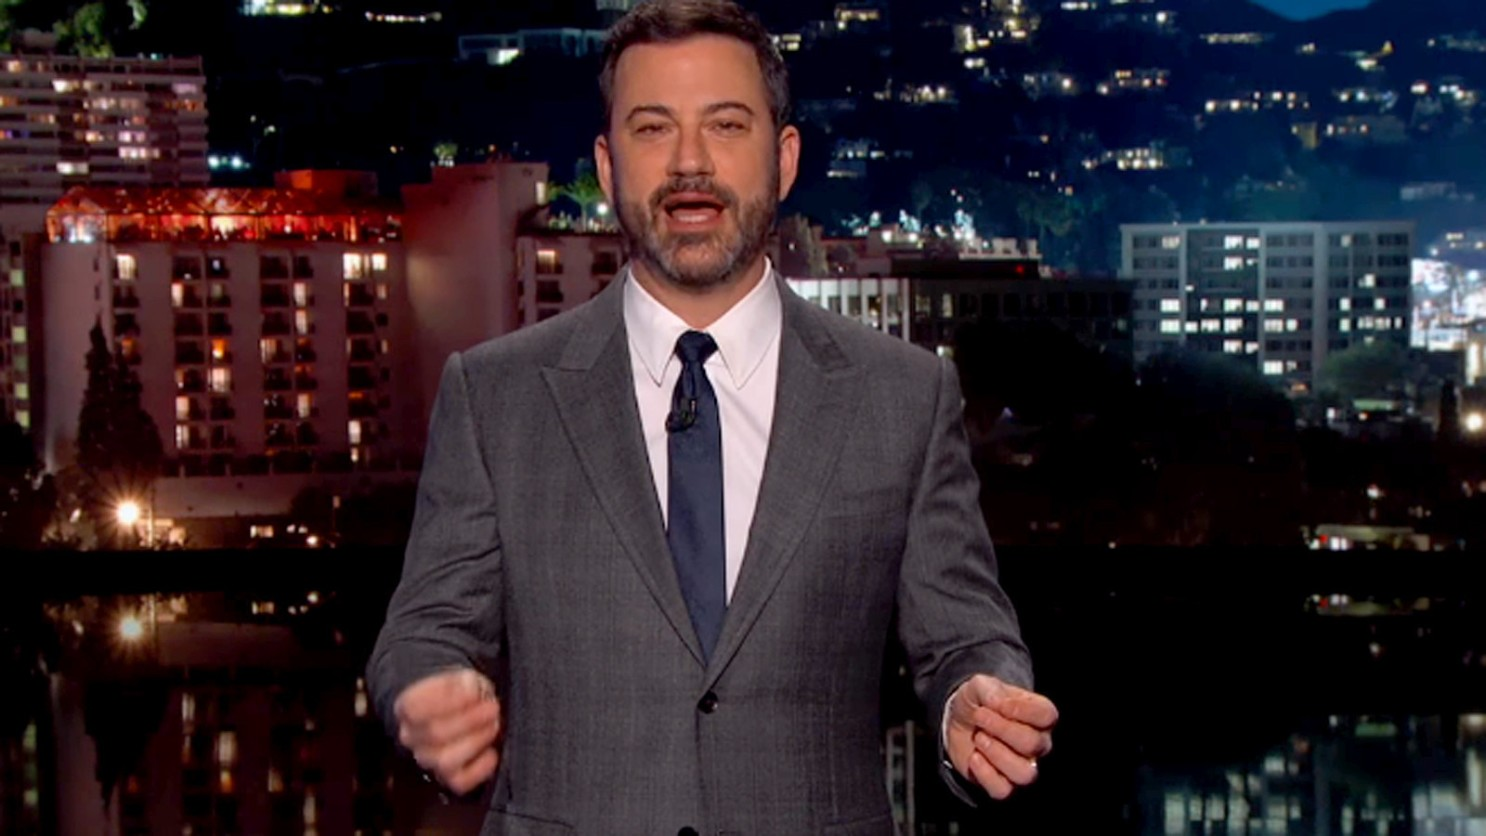 Jimmy Kimmel host of Late-Night Talk Show apologies for the use of Blackface in his show